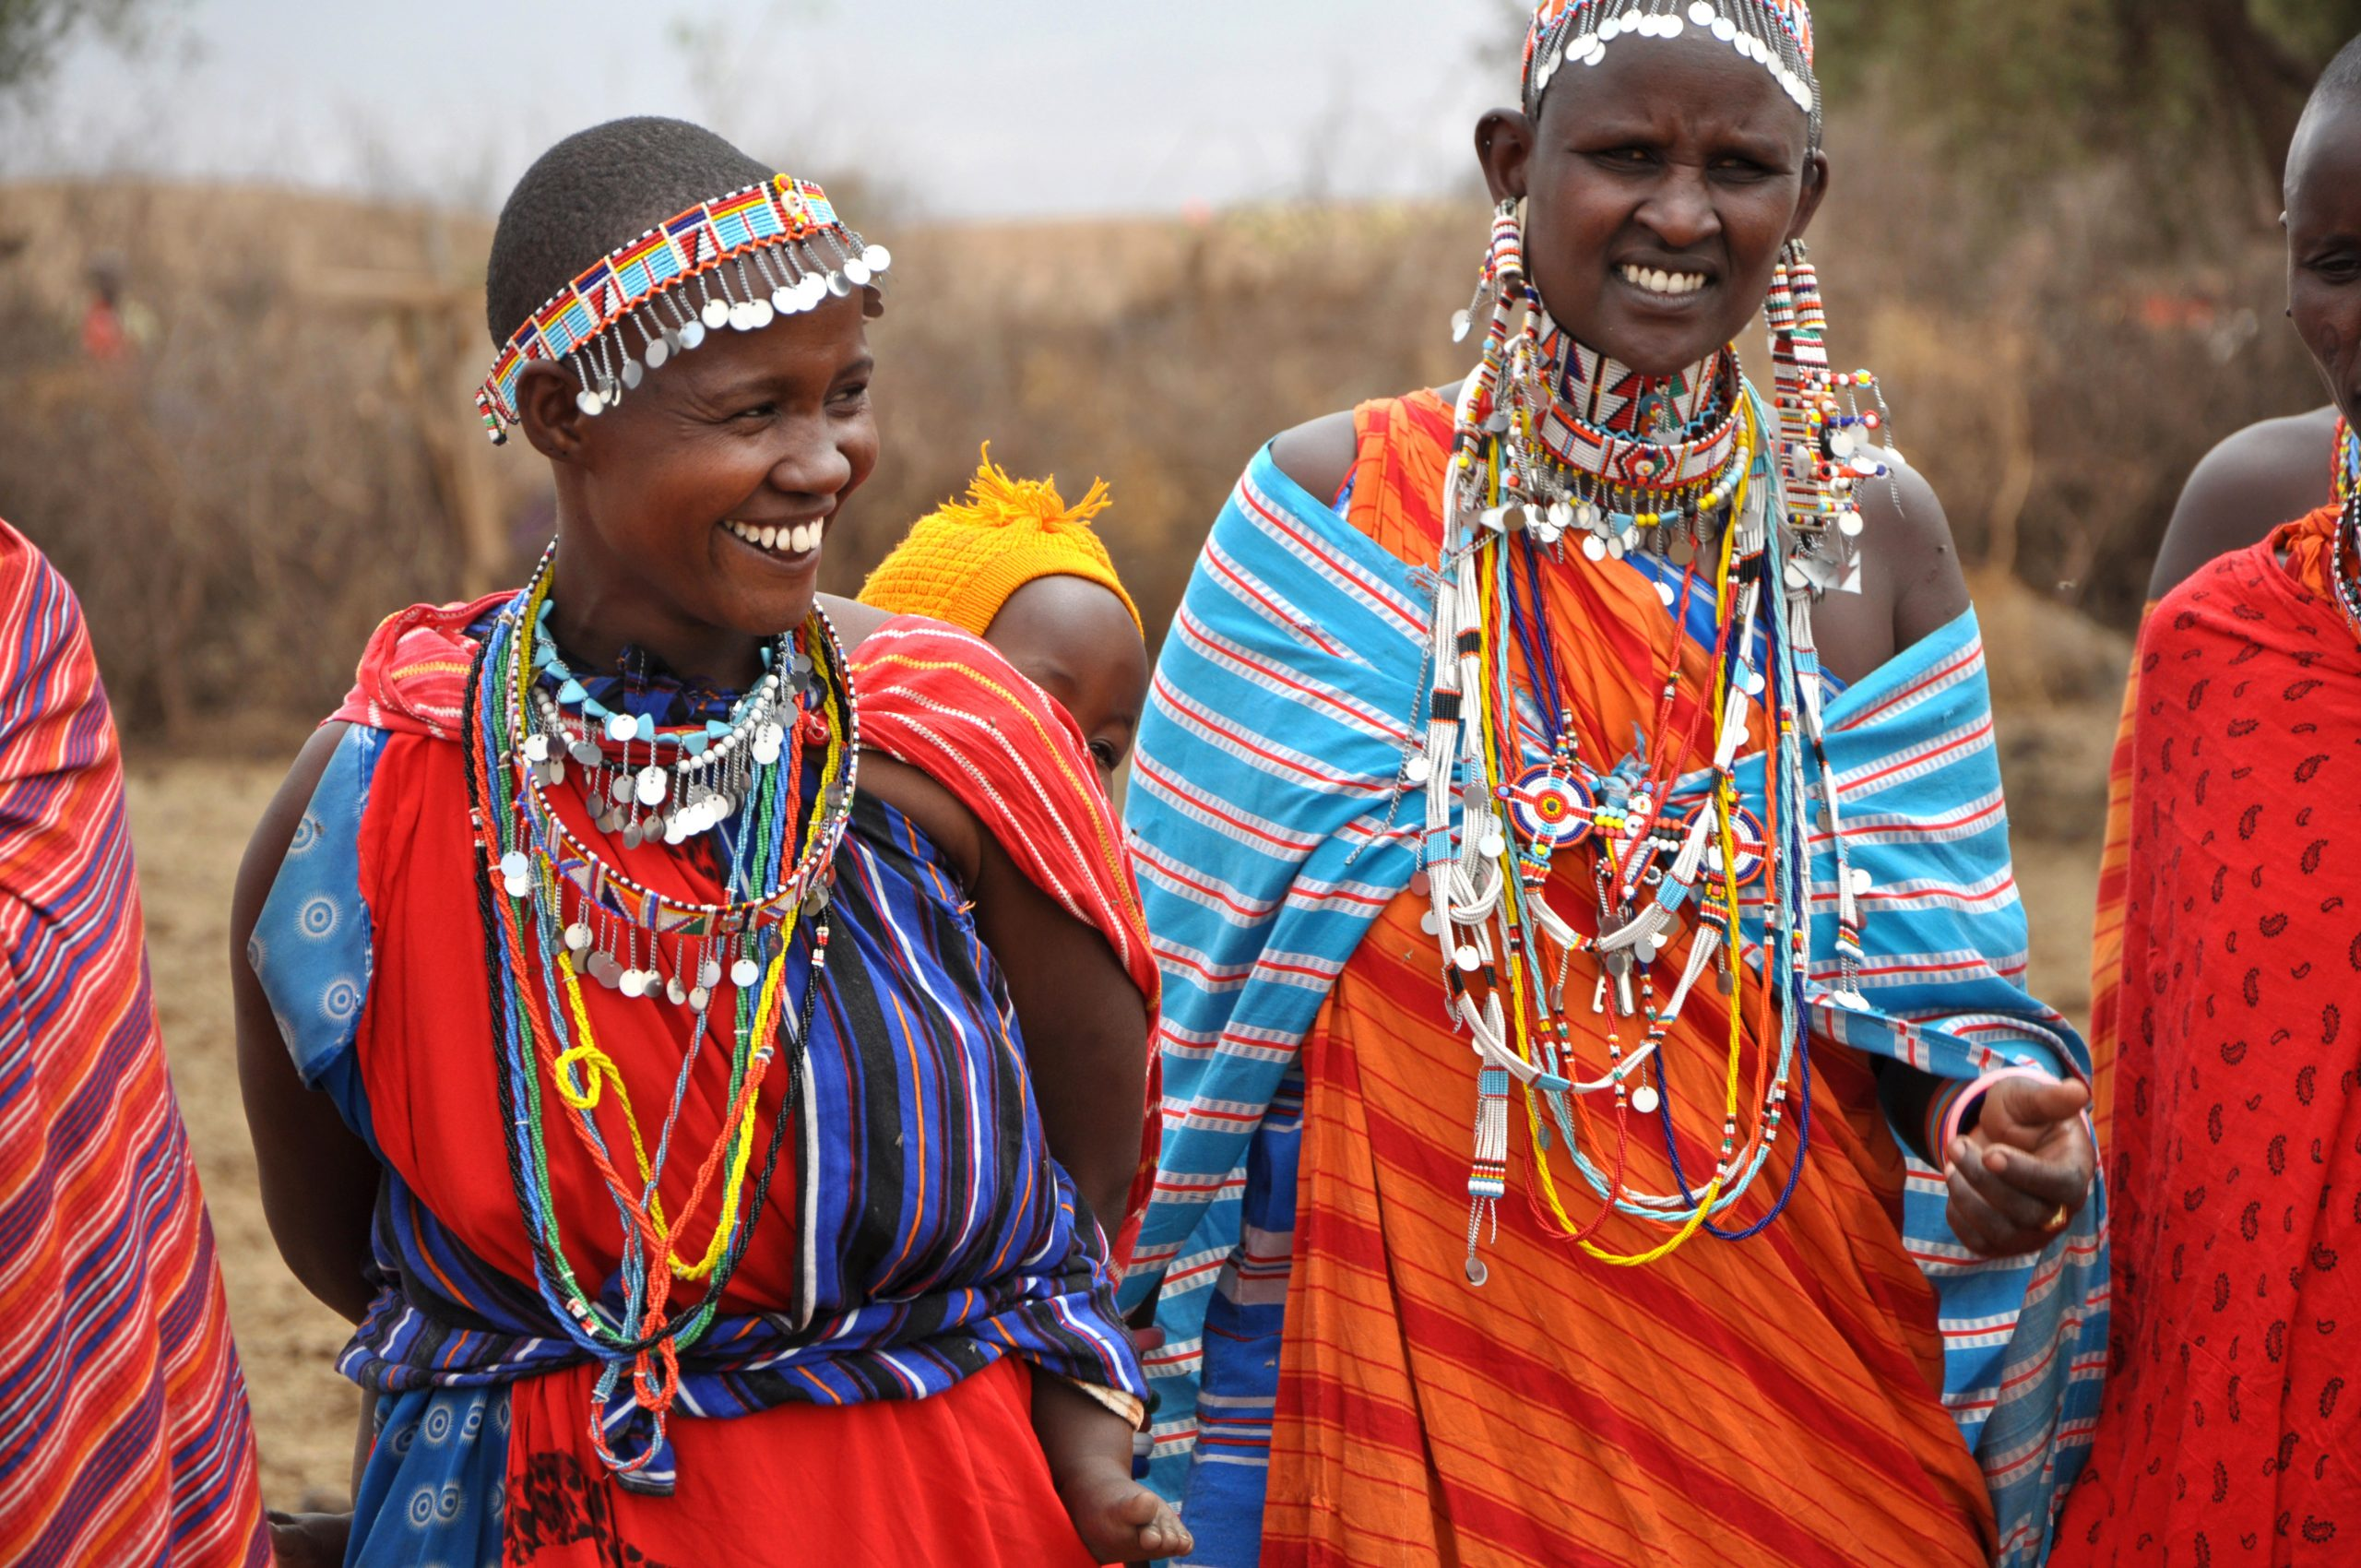 Amboseli National Park, Kenya - September, 2014: Portarait of group of african women with traditional colorful ornaments (necklace, earrings) smiling and greeting tourists with traditional jumping dance